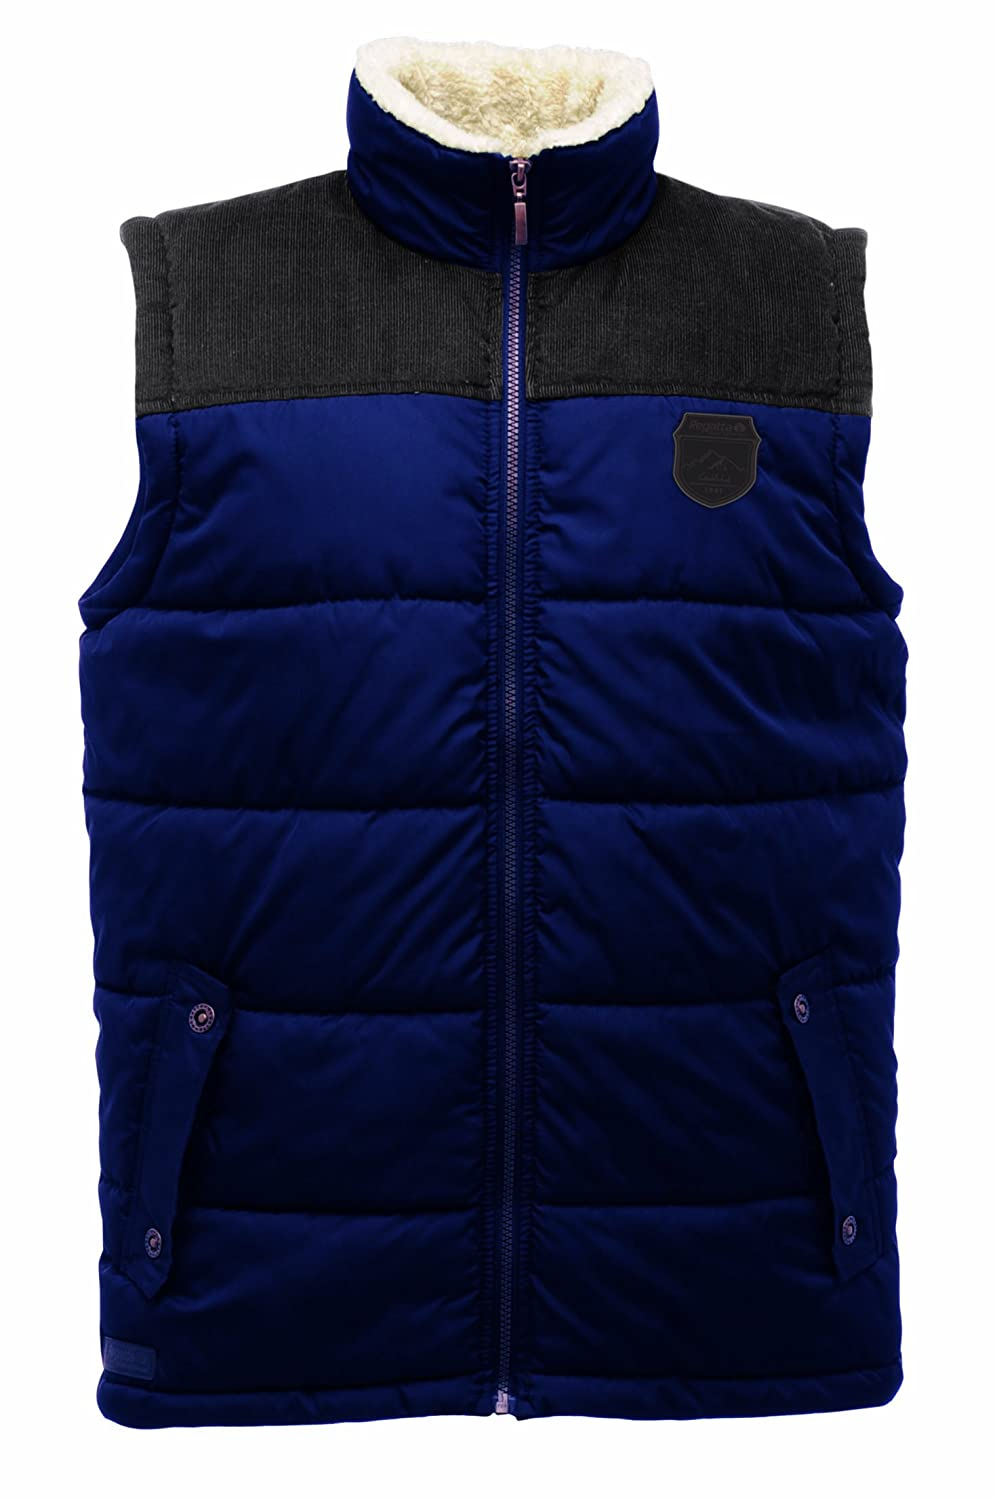 Regatta Men's Everyday Insulated Bodywarmer